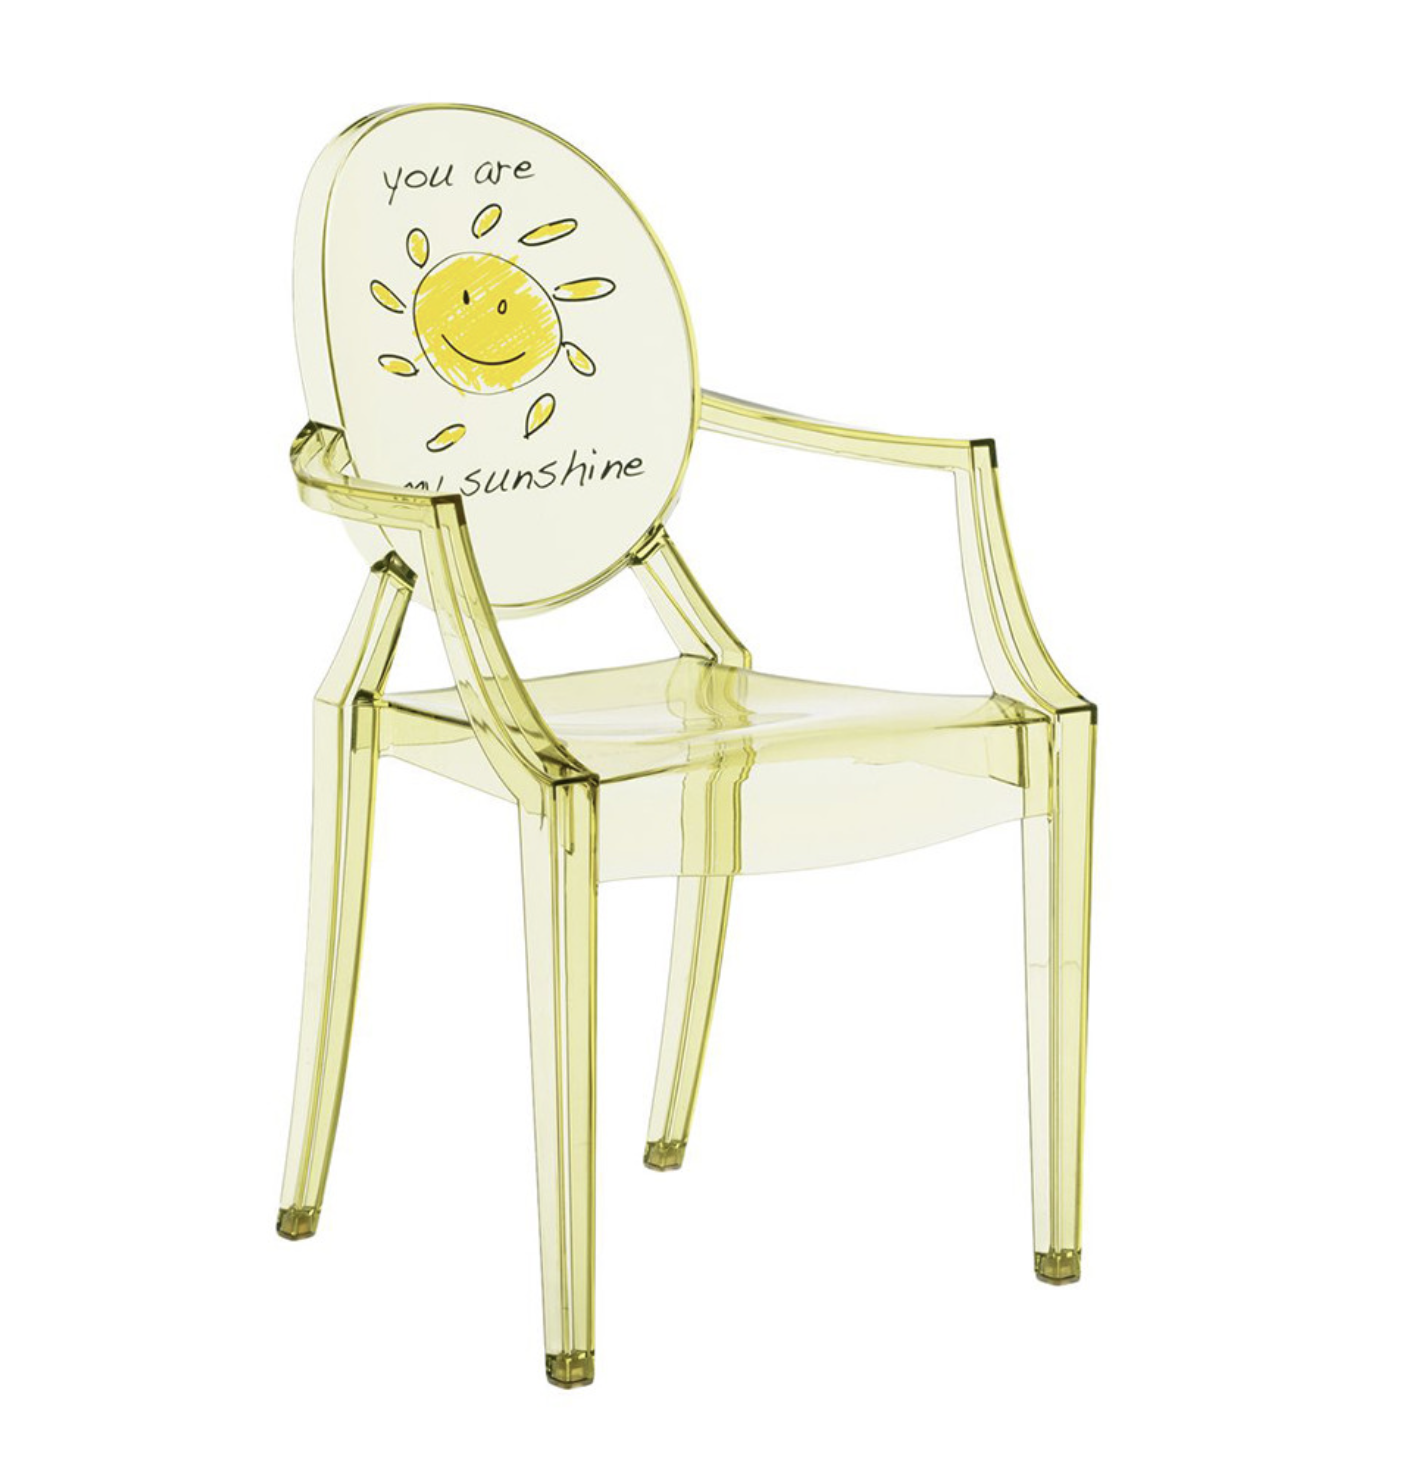 Kartell's LouLou Ghost chair for children, a design classic